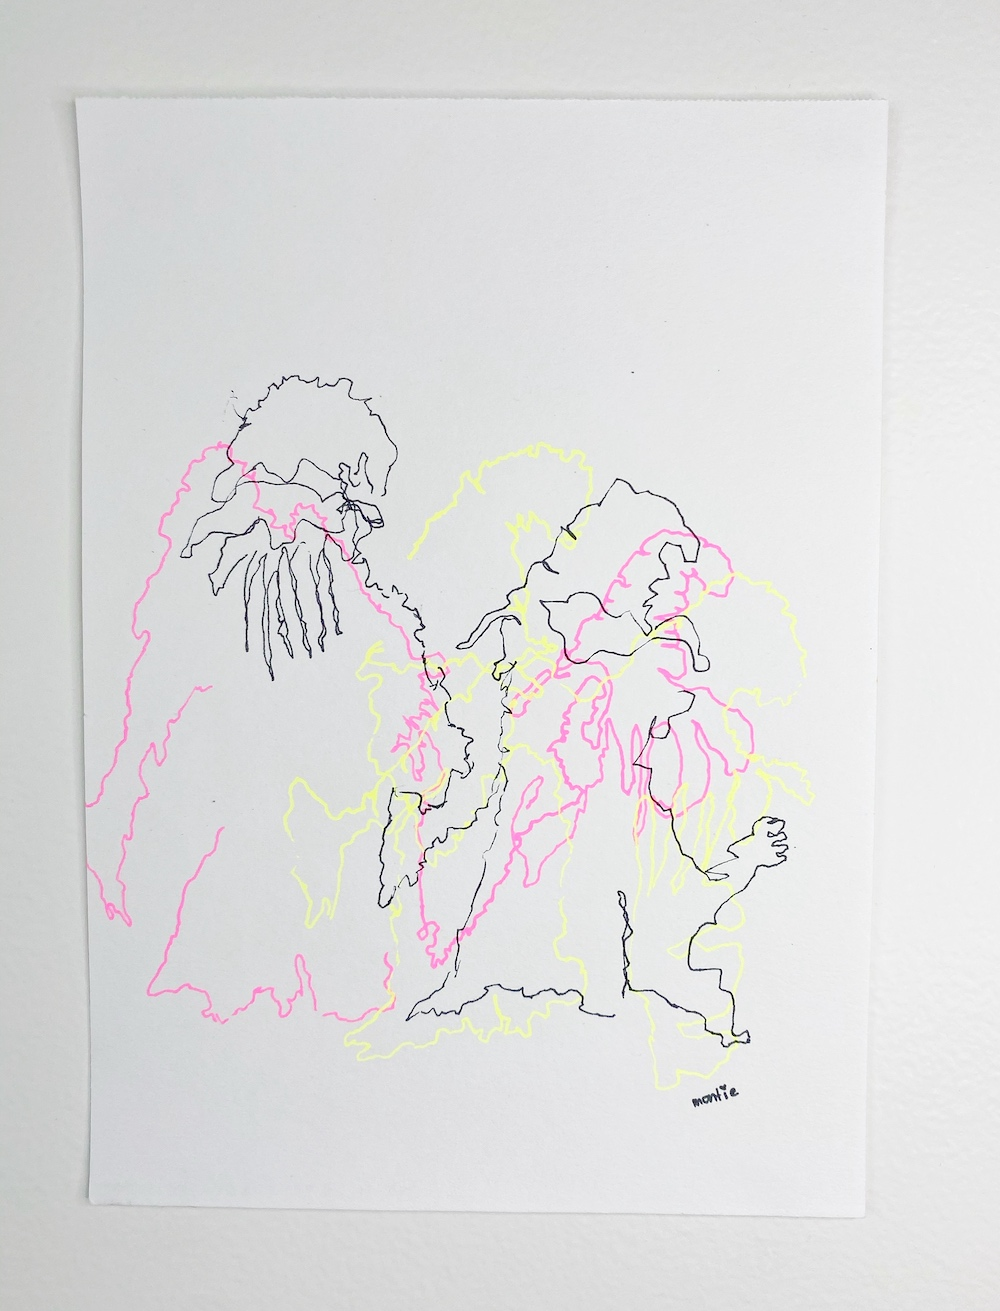 montie, The Craft, pen and ink